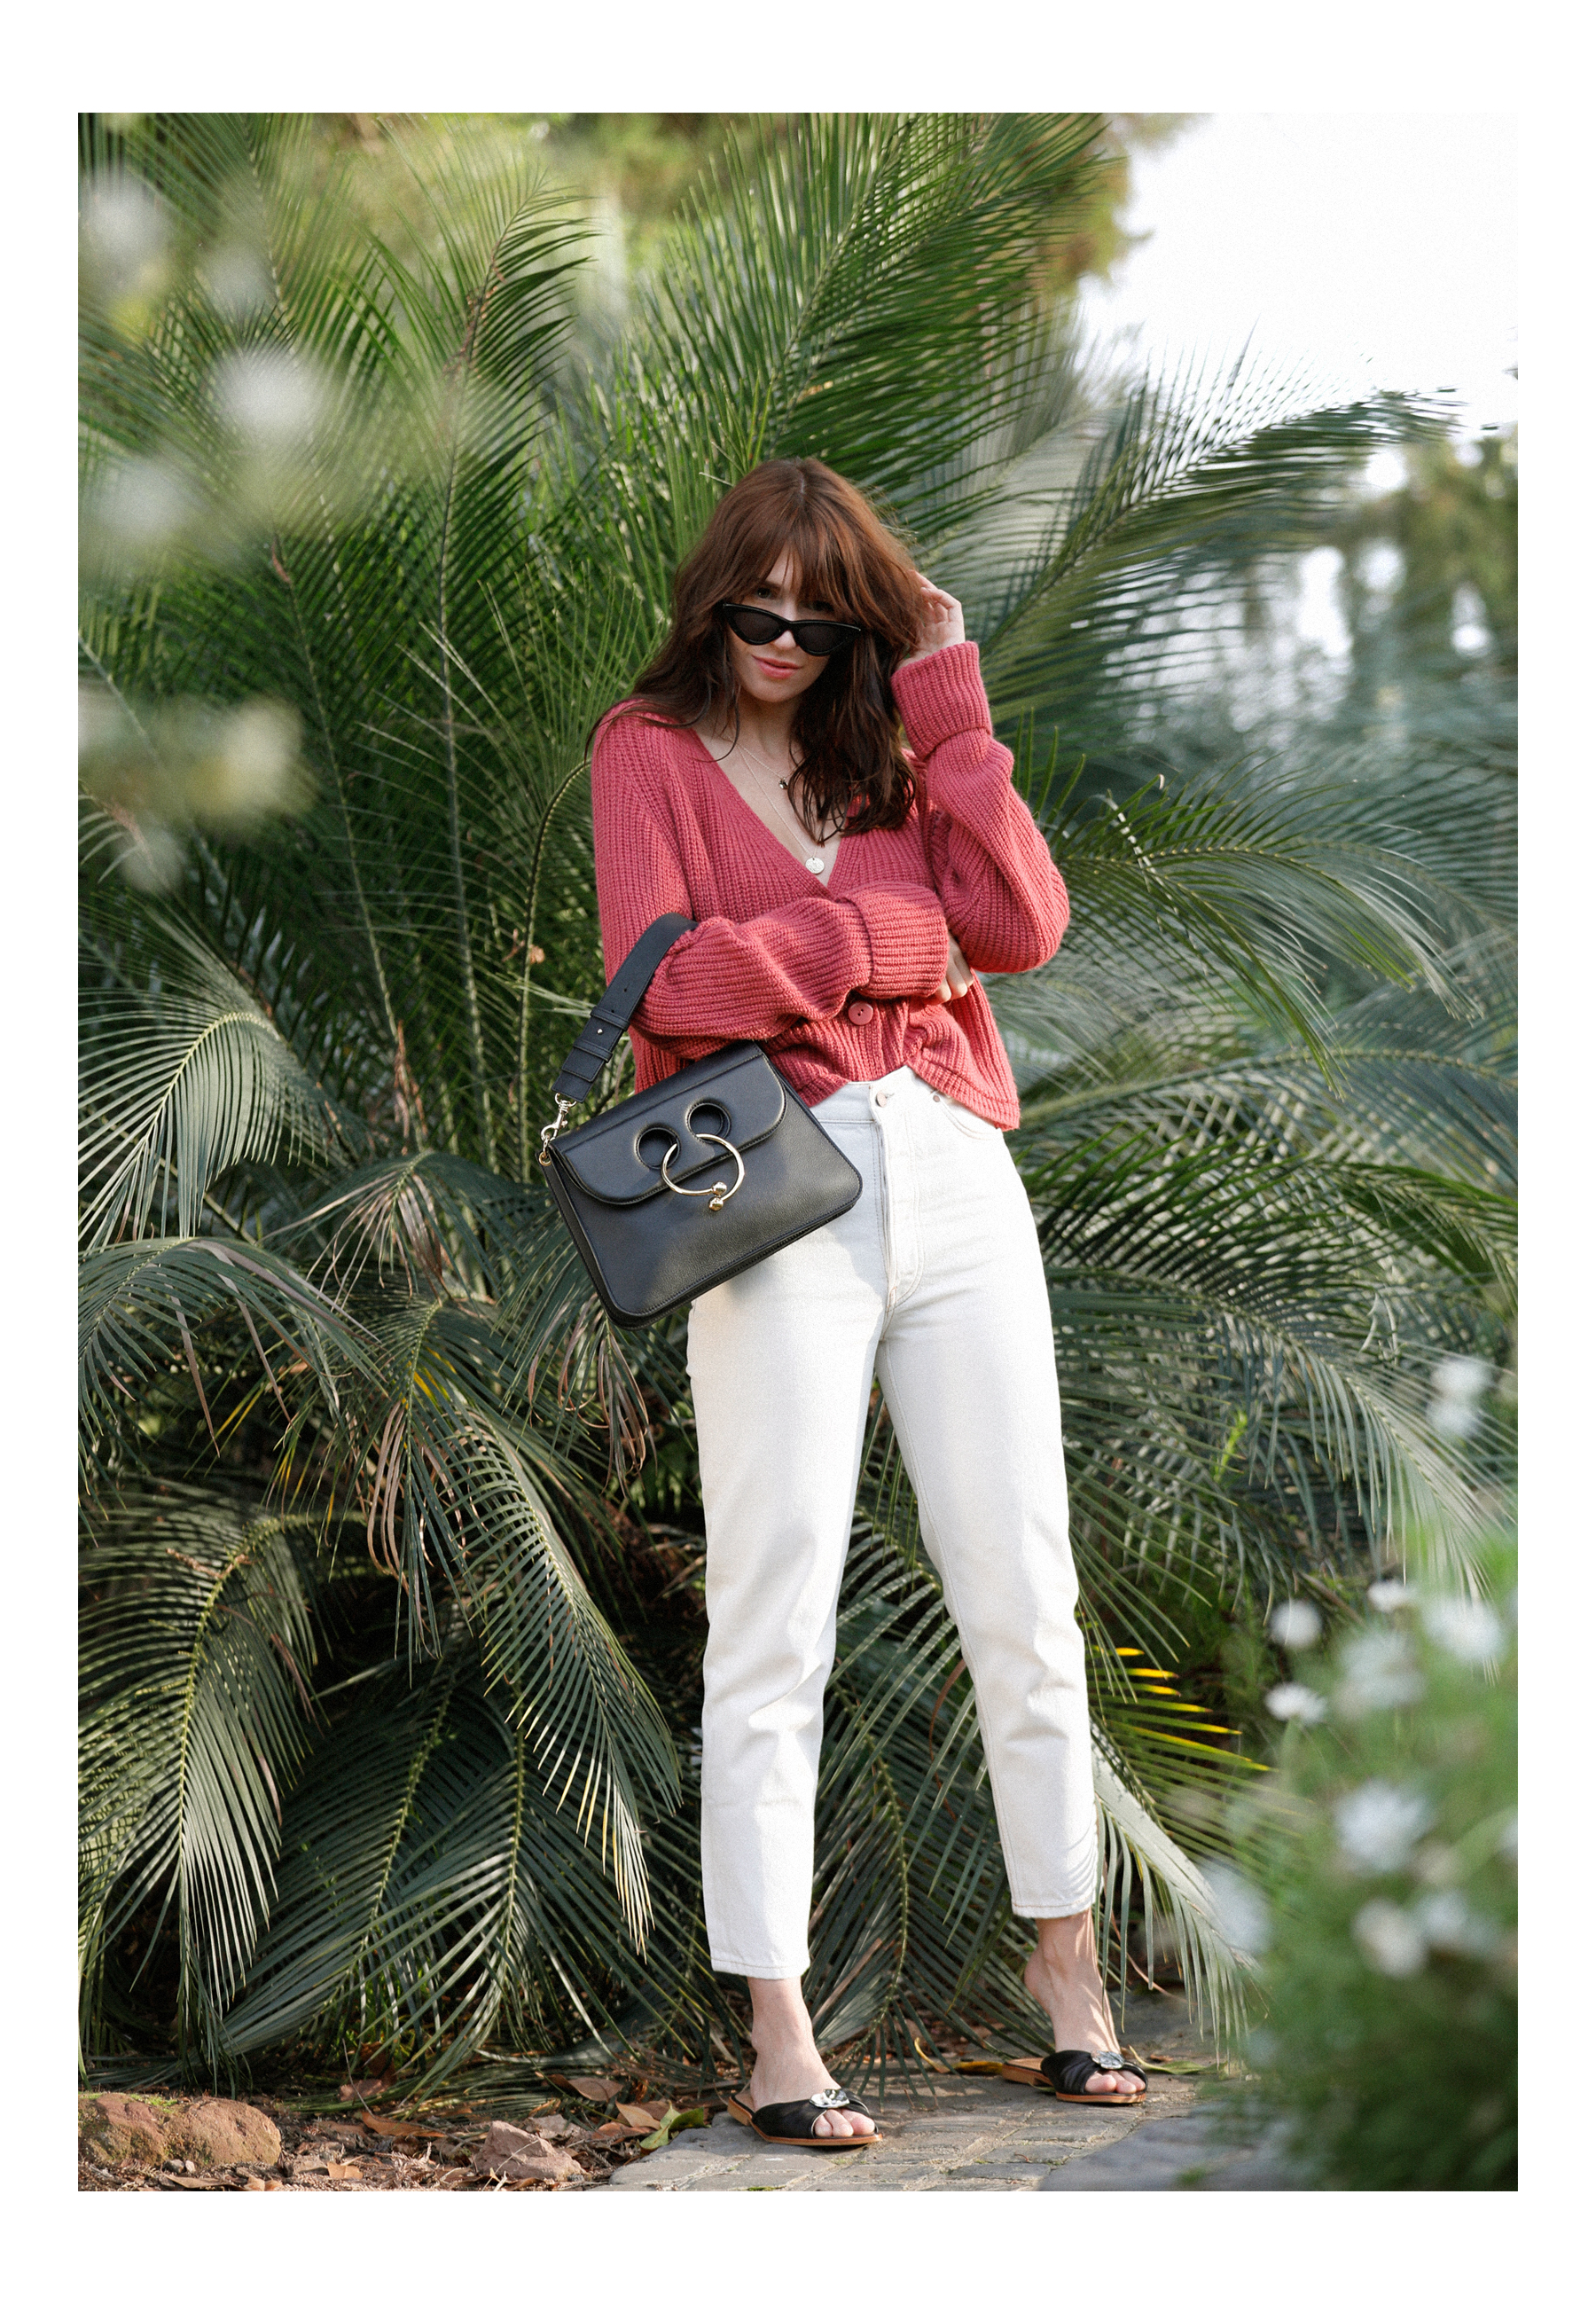 outfit palm trees holiday in winter garden summer spring red cardigan parisienne style pierce bag j.w. anderson white jeans flattered slippers cat-eye sunglasses last lolita le specs adam selman ricarda schernus catsanddogbslog modeblogger düsseldorf 3